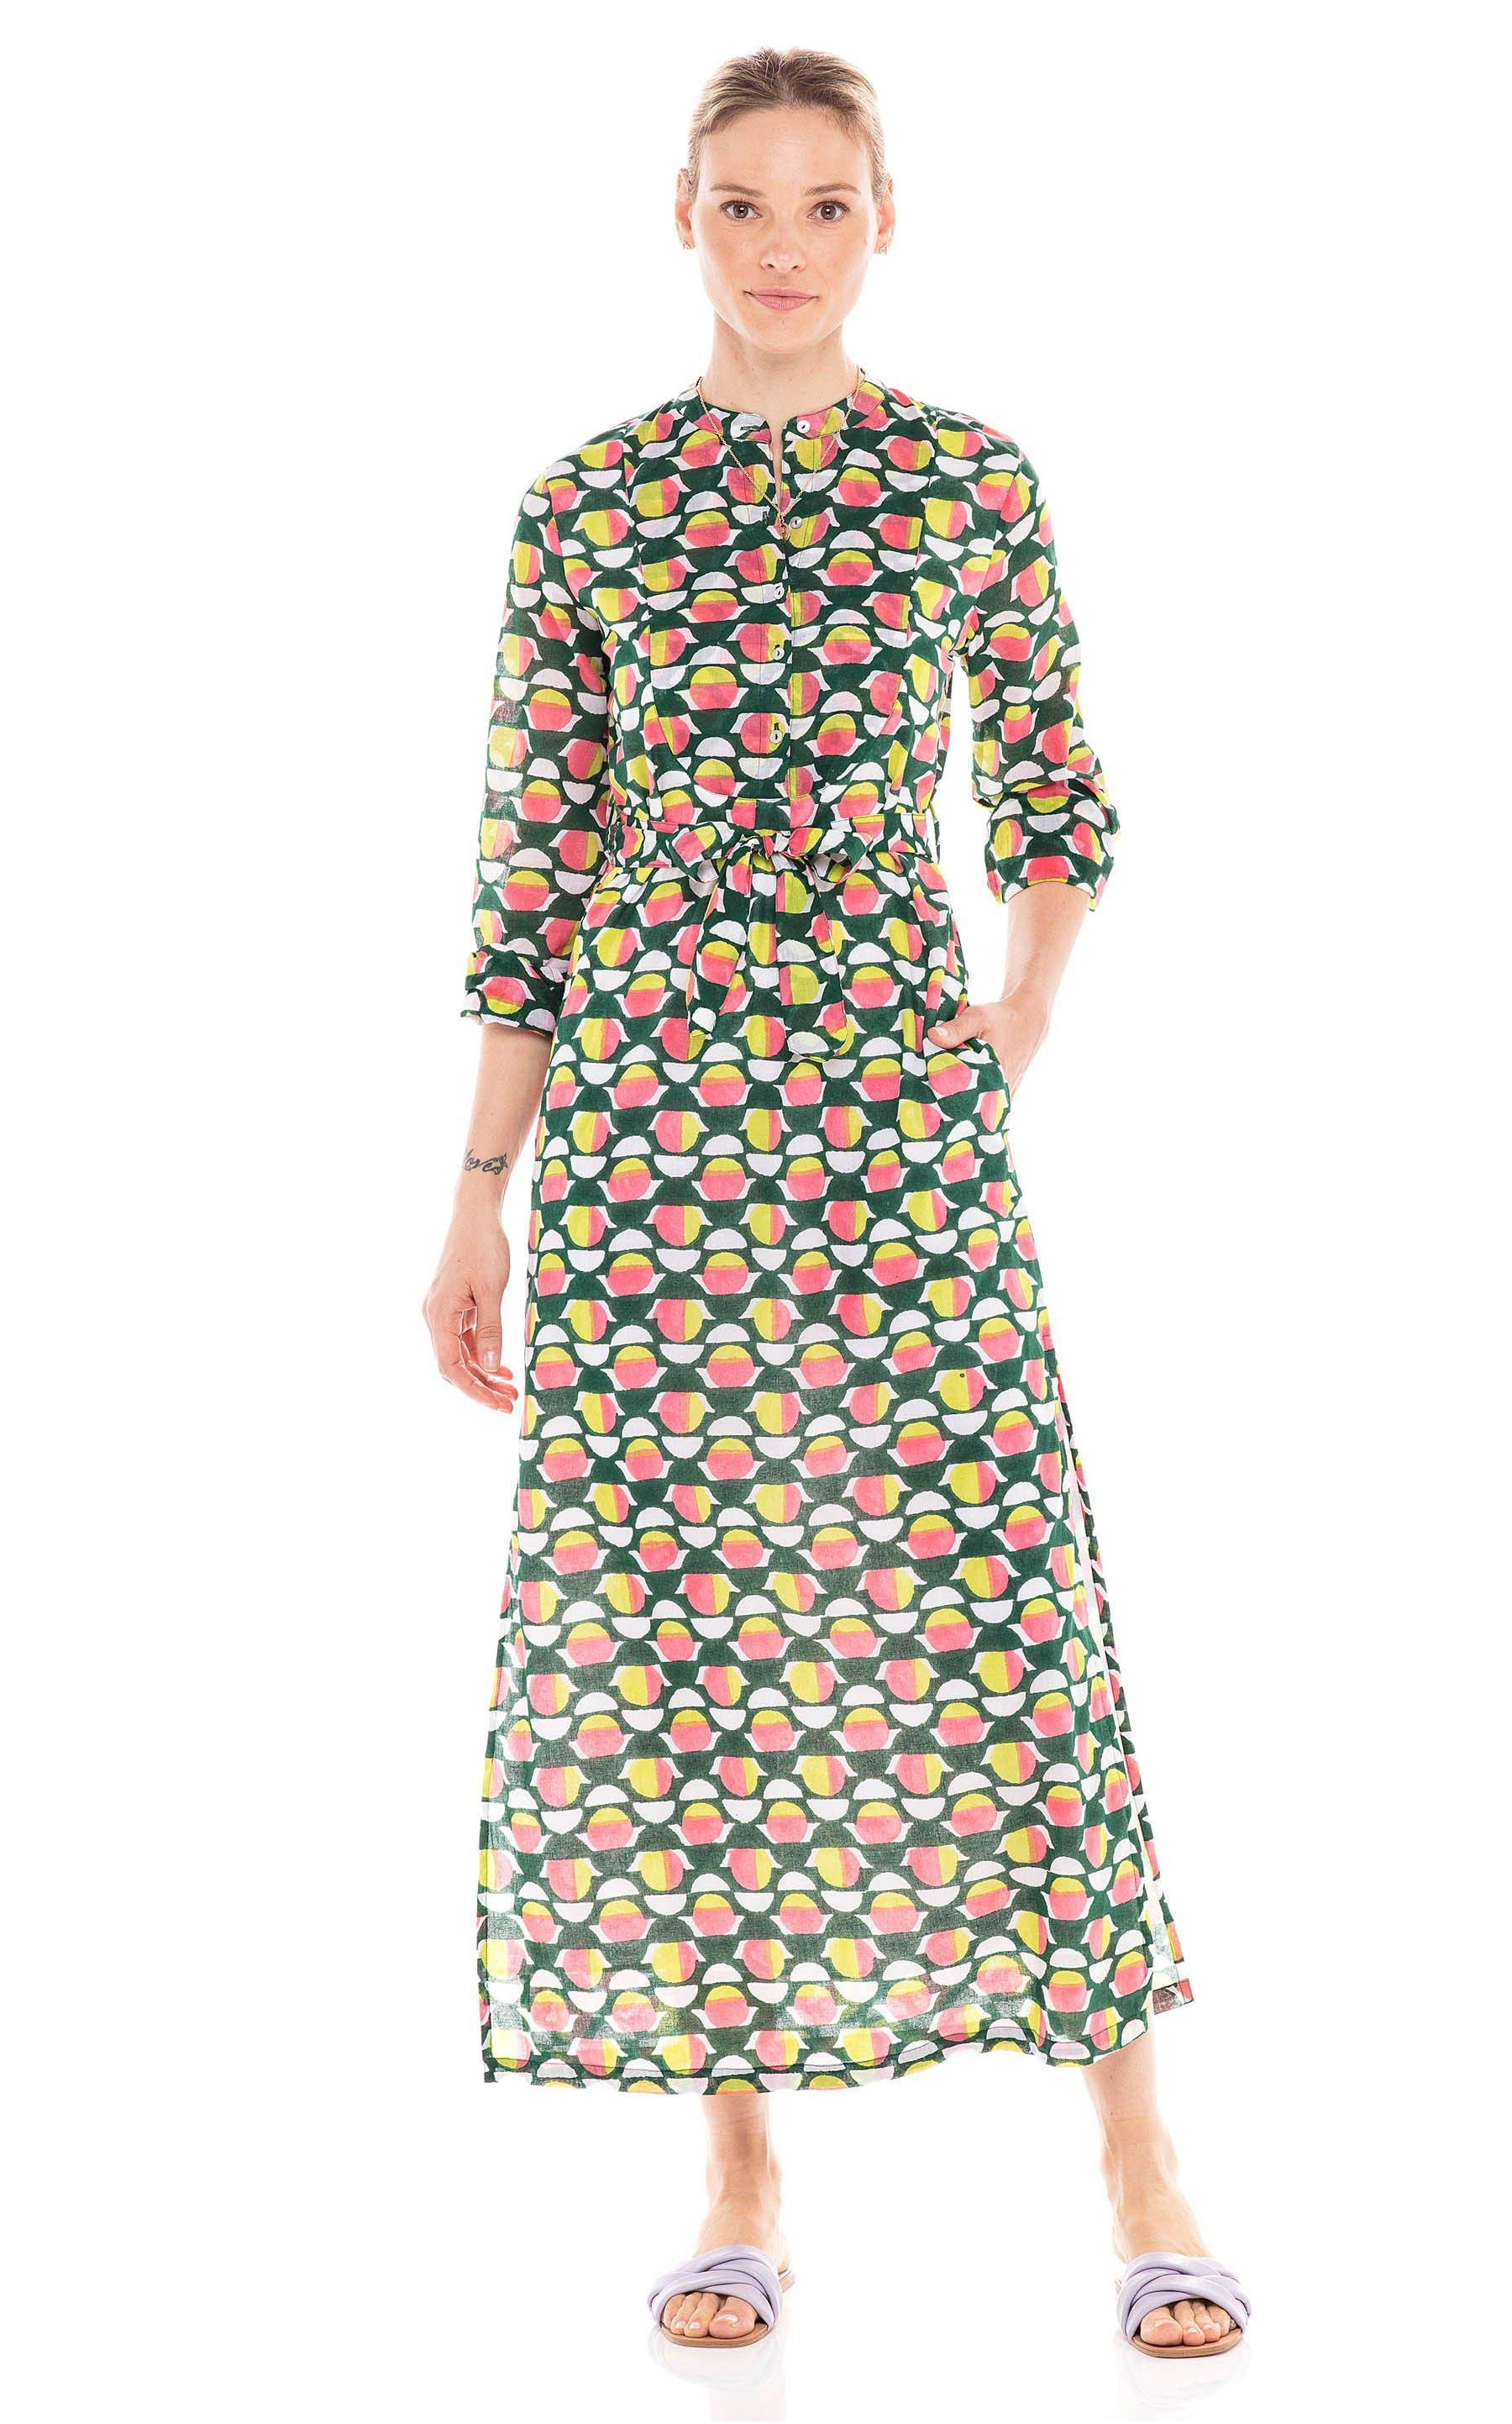 Crystal Dress Curlew Curve Lime Green 4